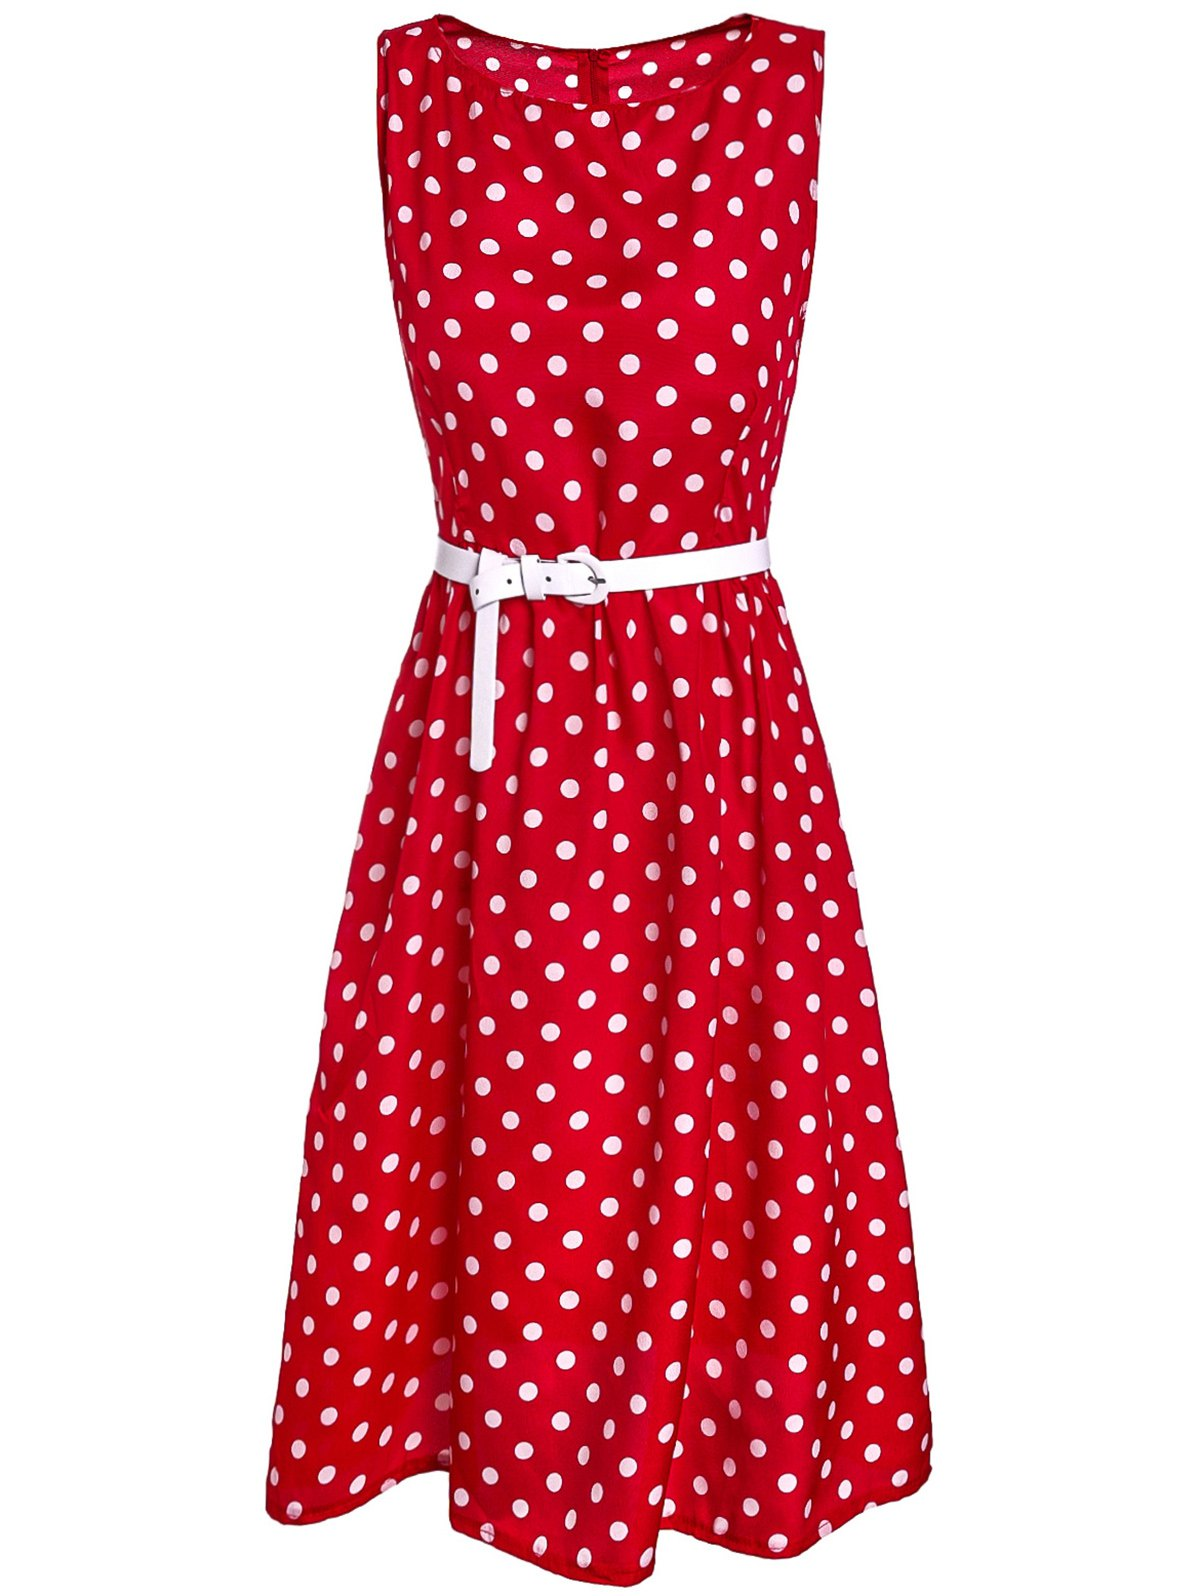 Retro Style Sleeveless Polka Dot Printed Ball Gown Dress . 7b2bcda3393